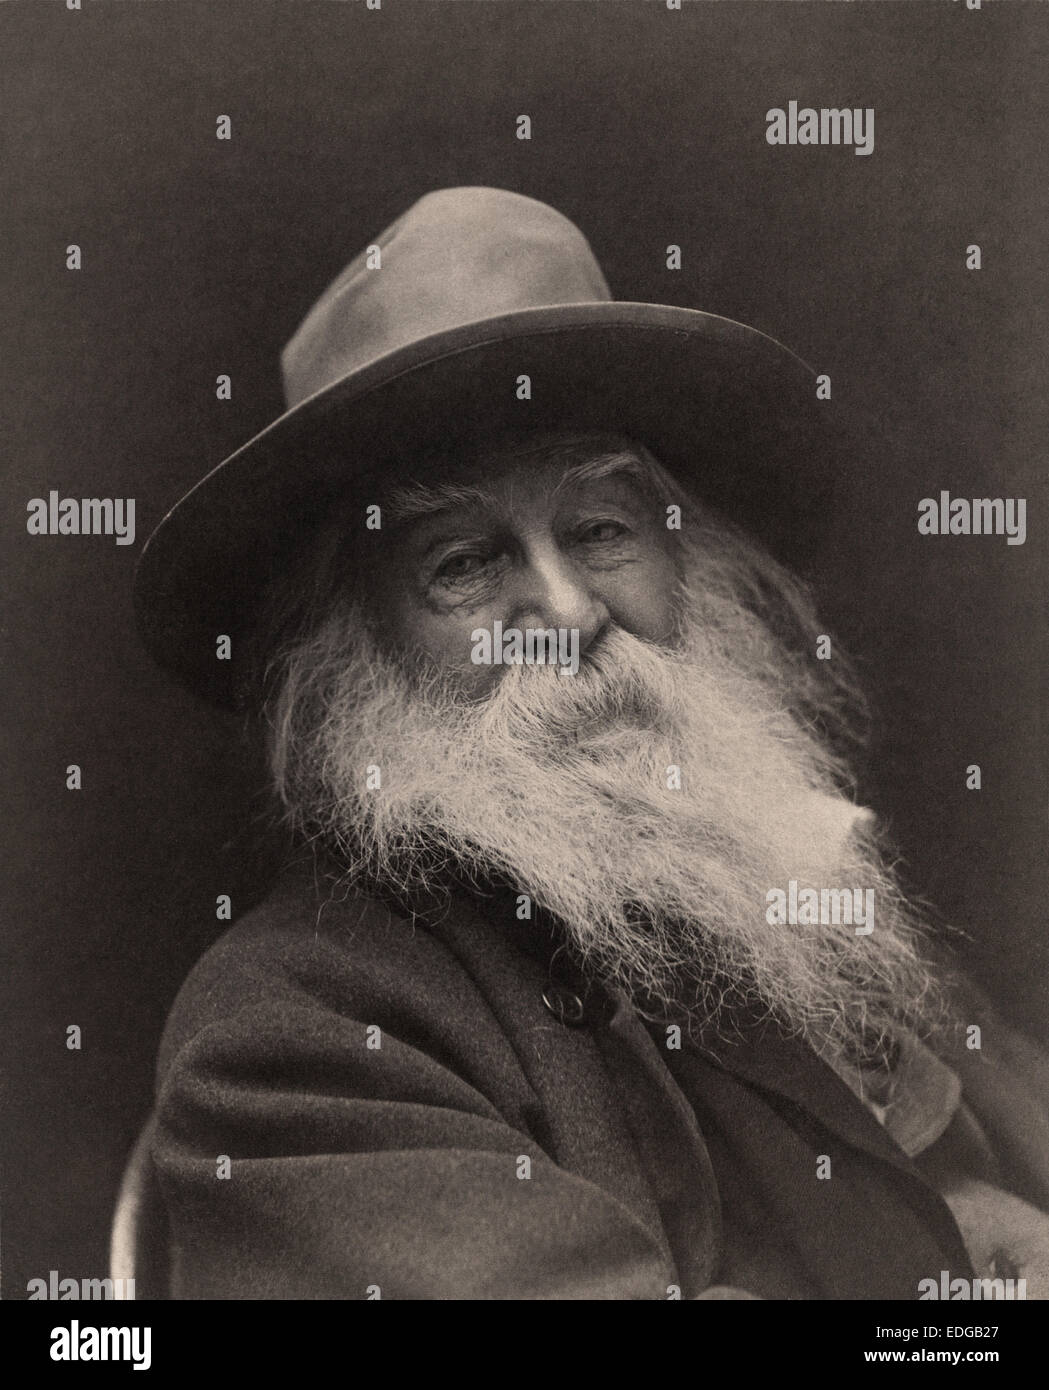 A biography of walter whitman an american poet essayist and journalist